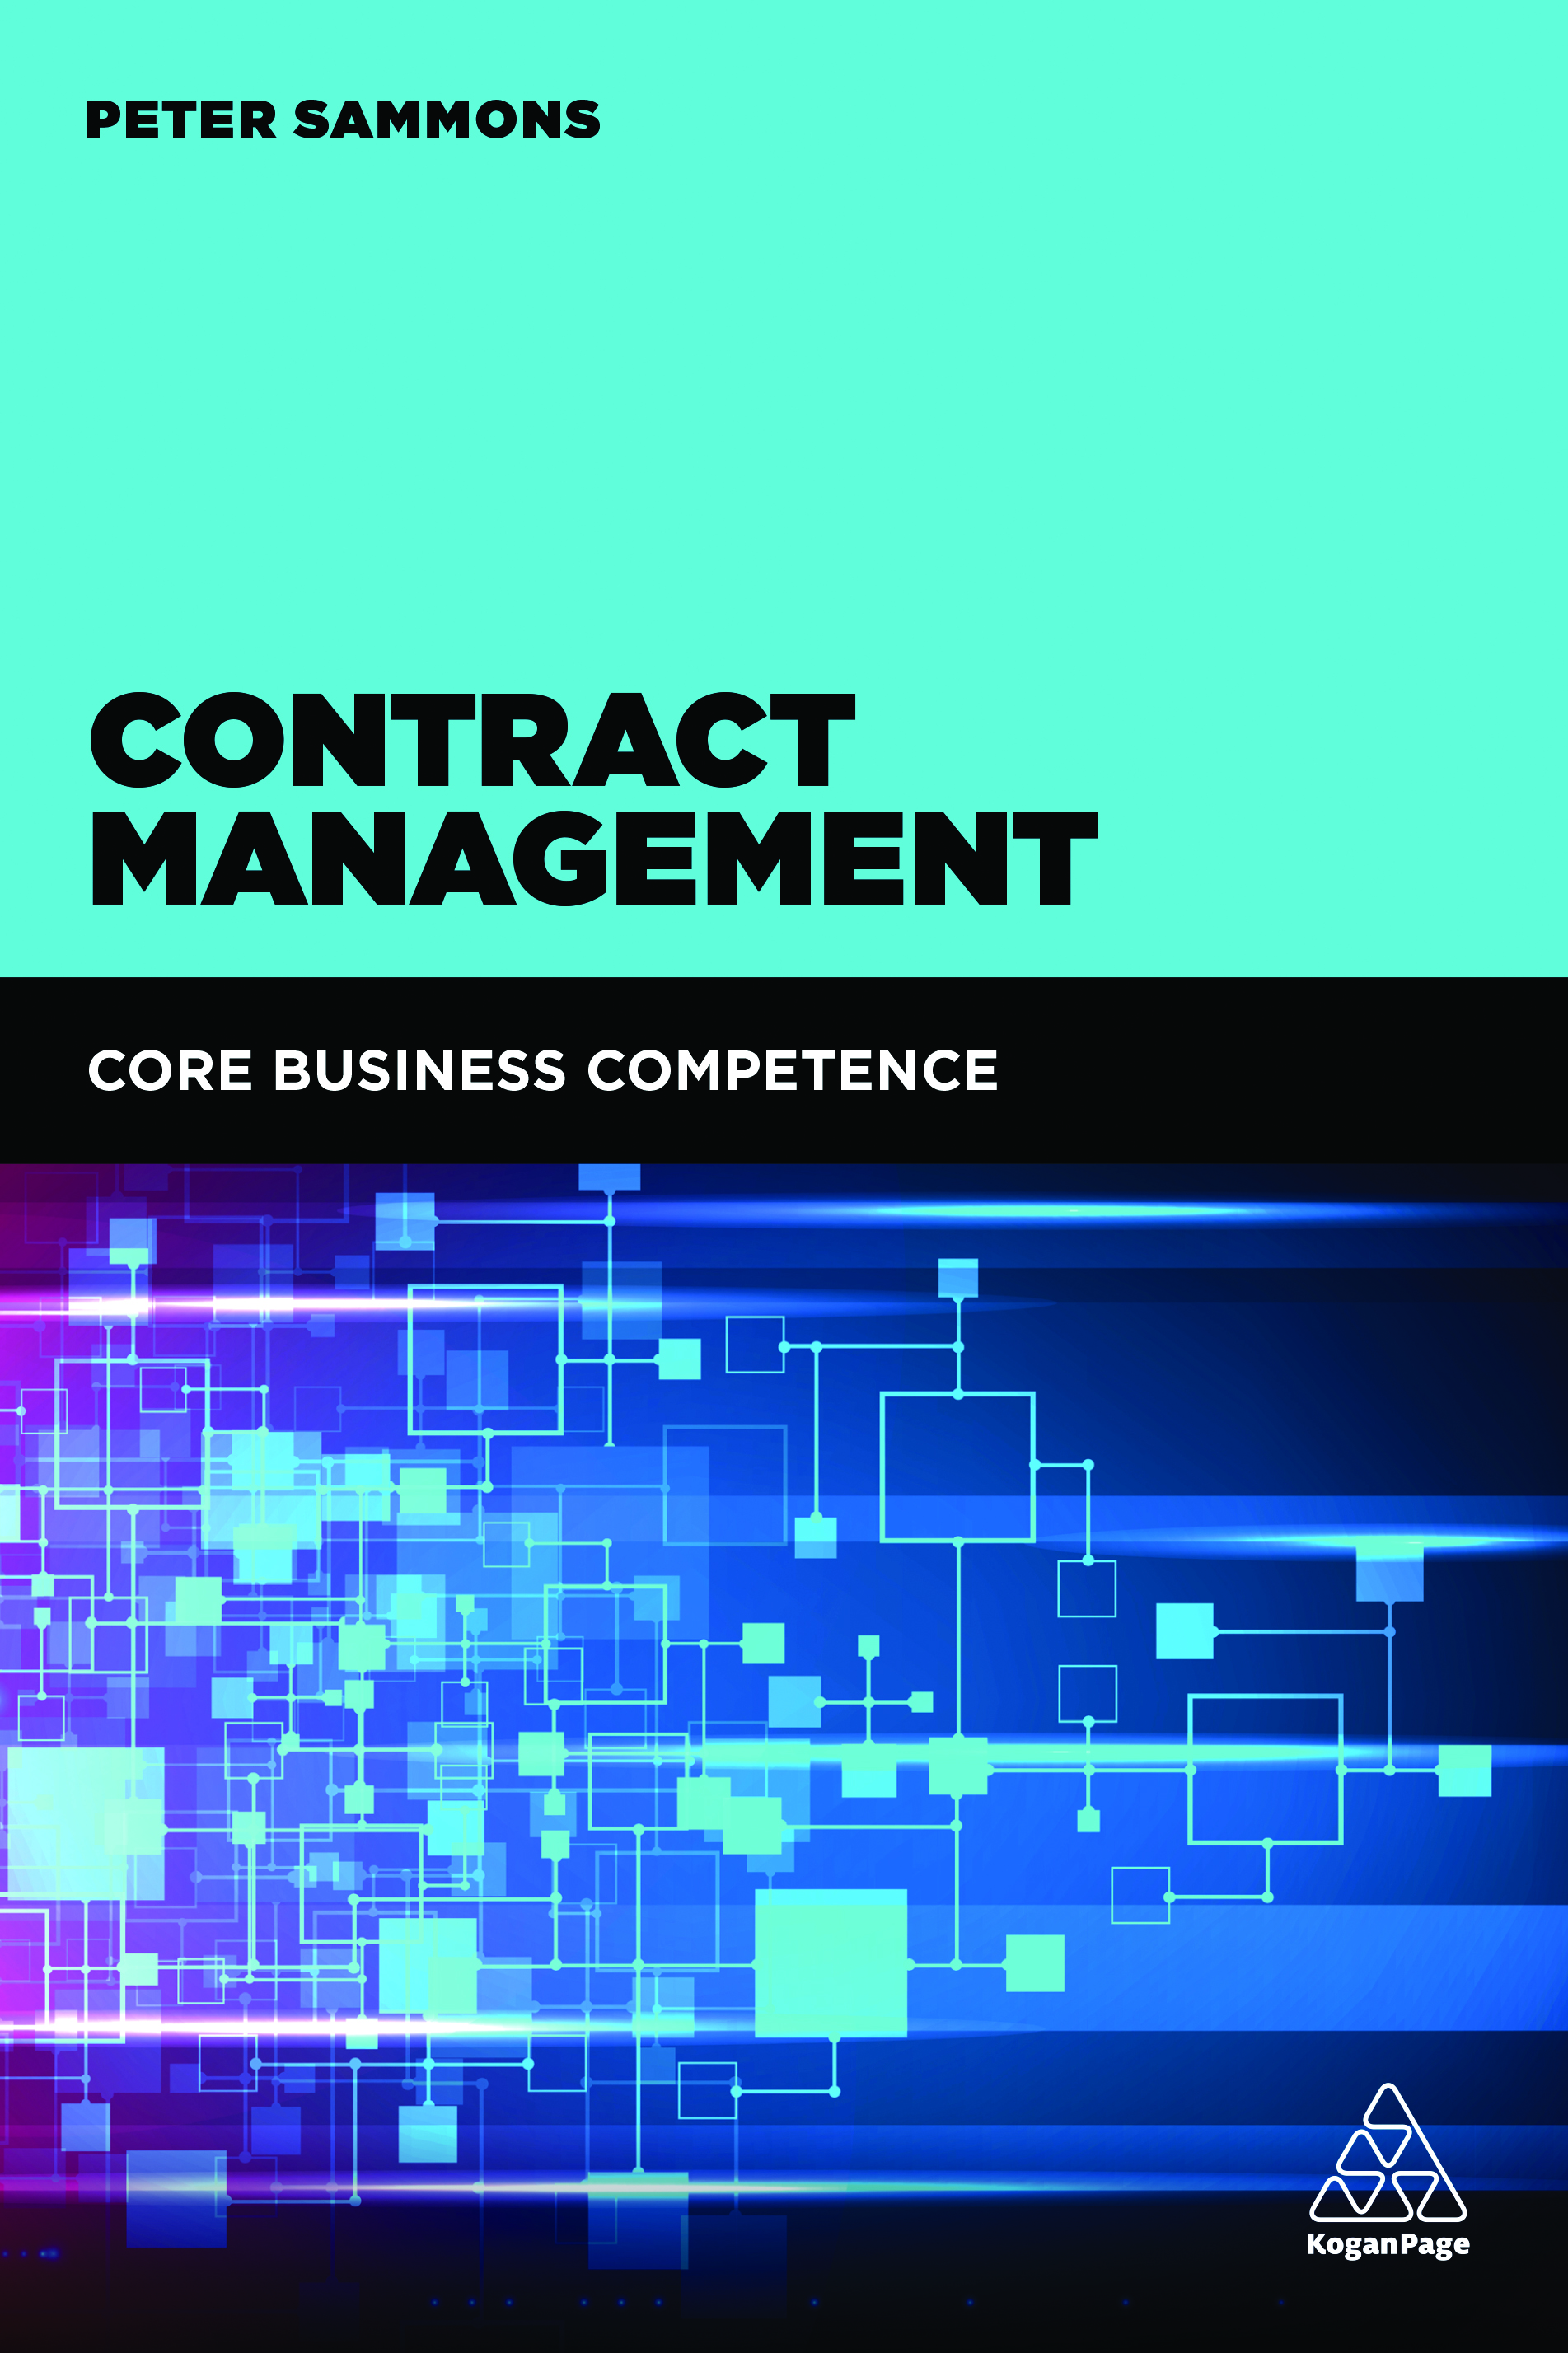 Download Ebook Contract Management by Peter Sammons Pdf